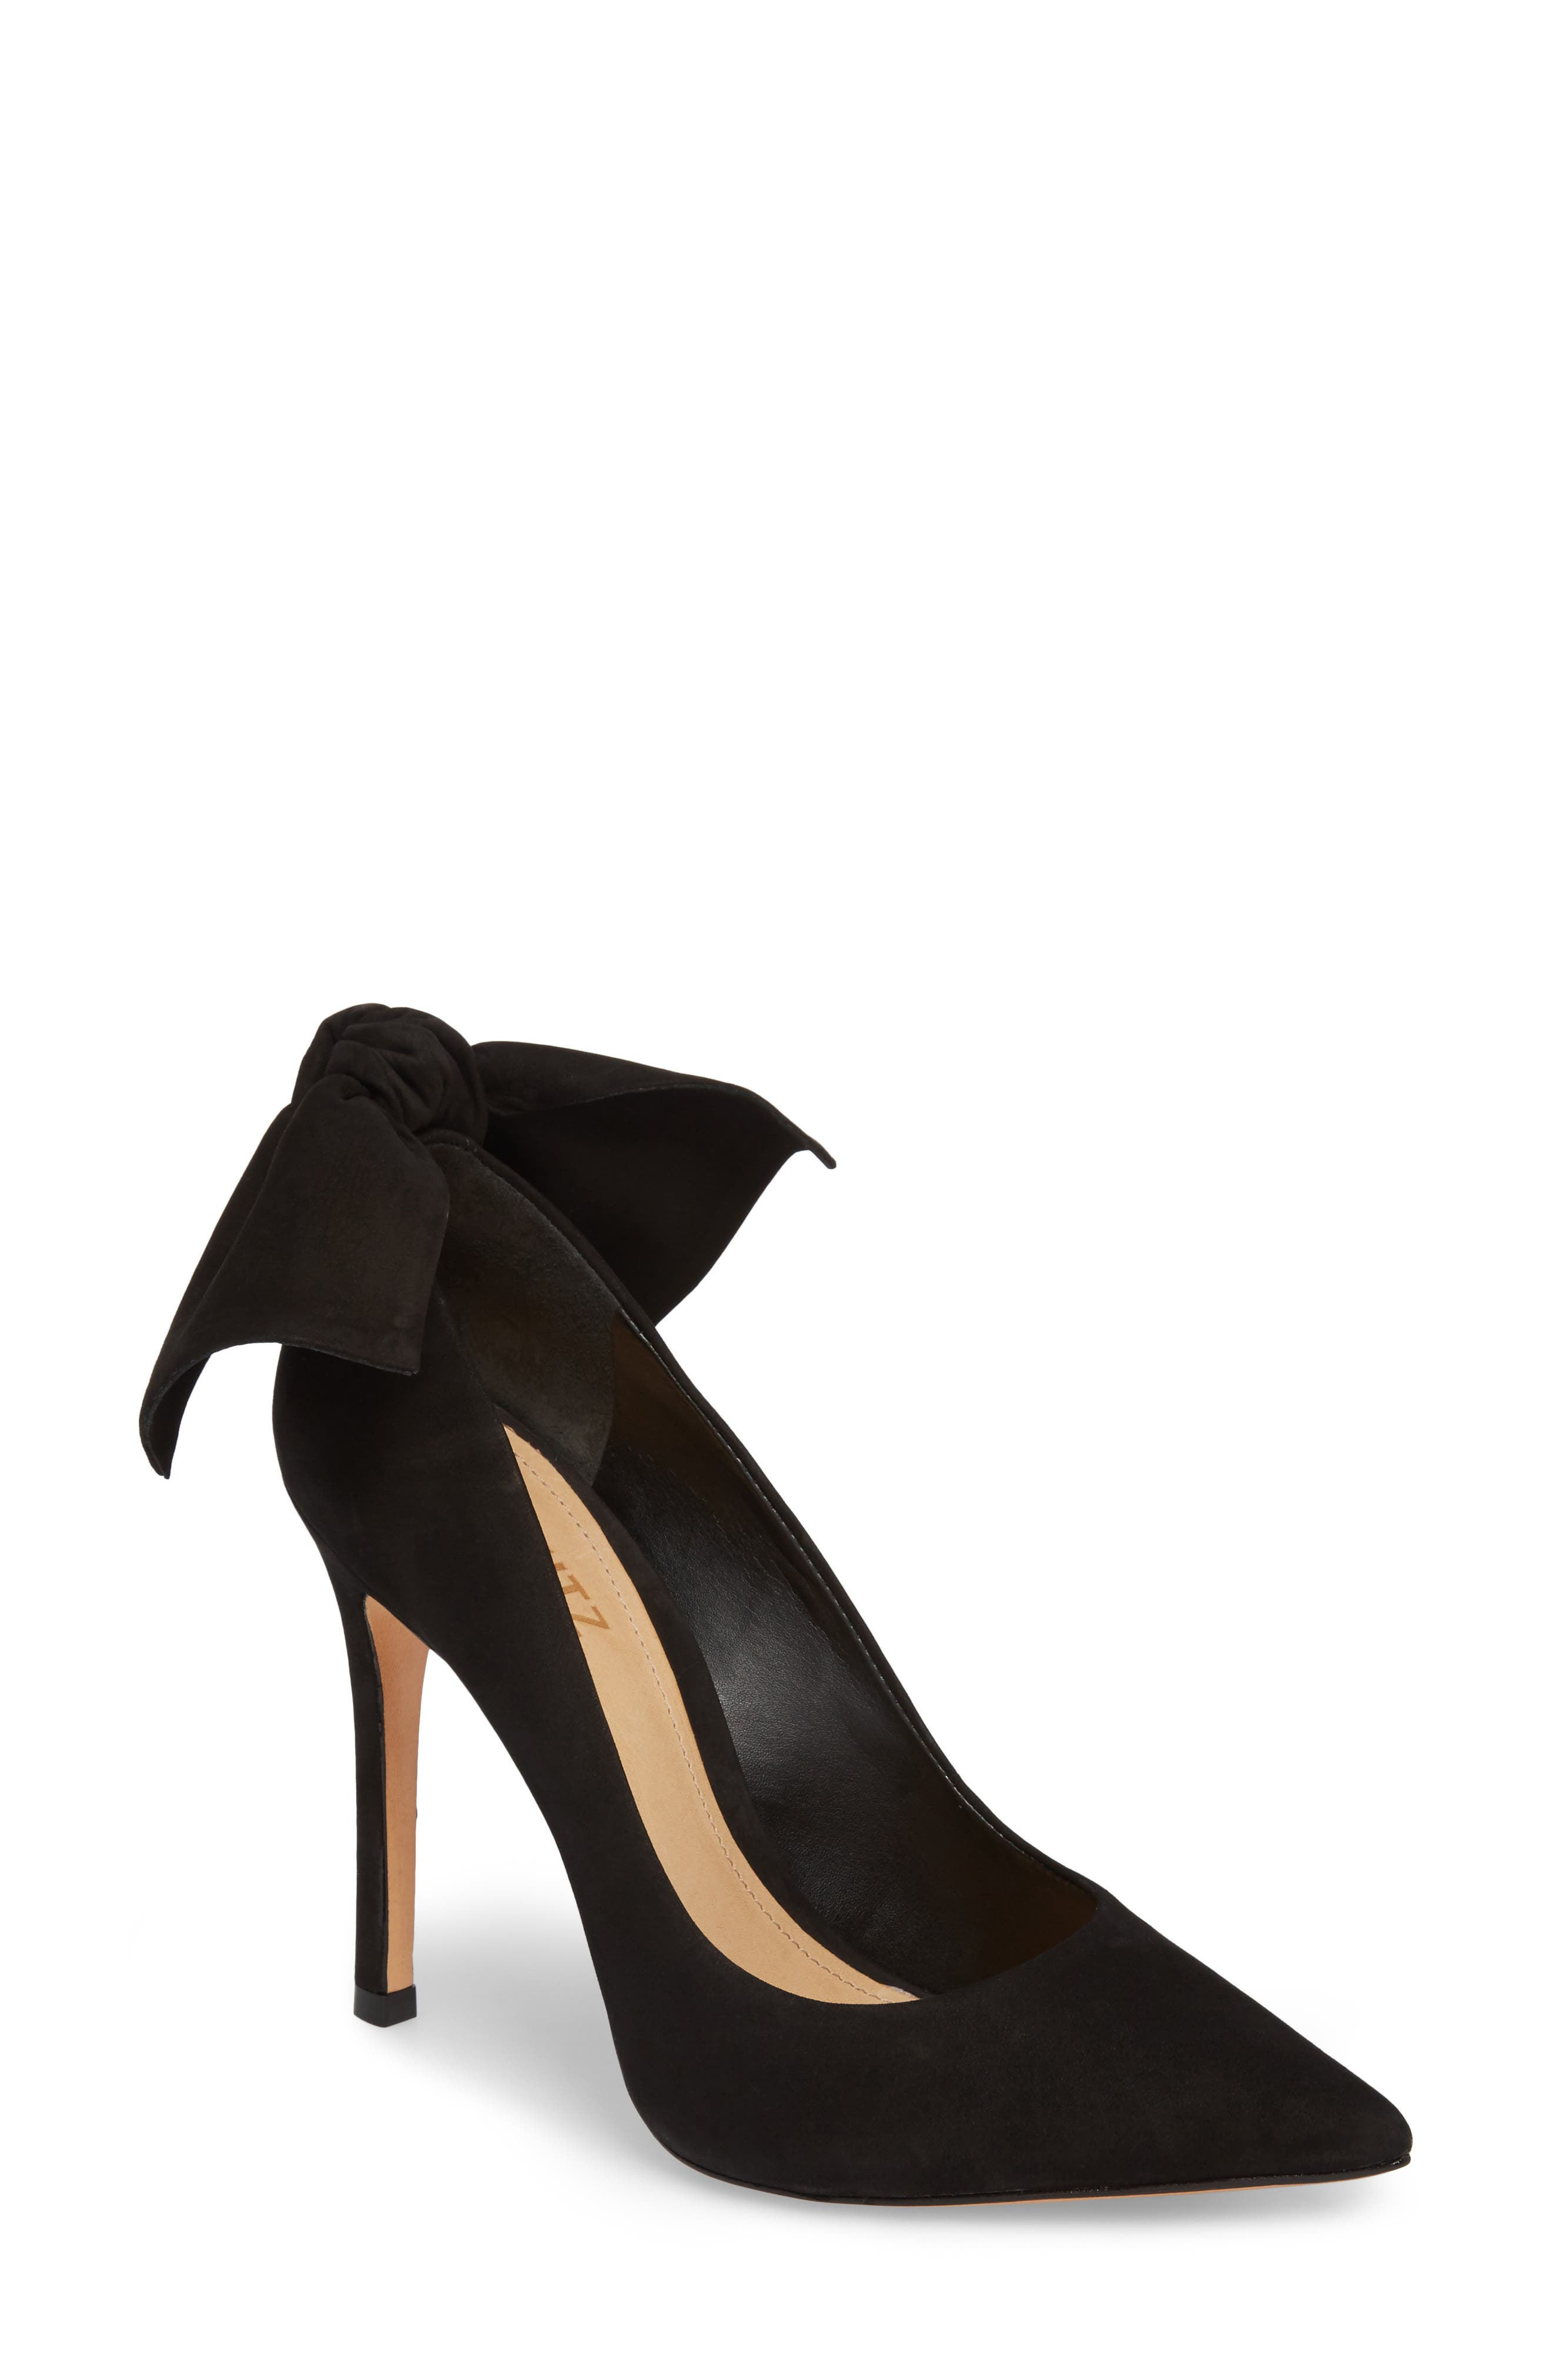 SCHUTZ,                             Blasiana Bow Pump,                             Main thumbnail 1, color,                             001